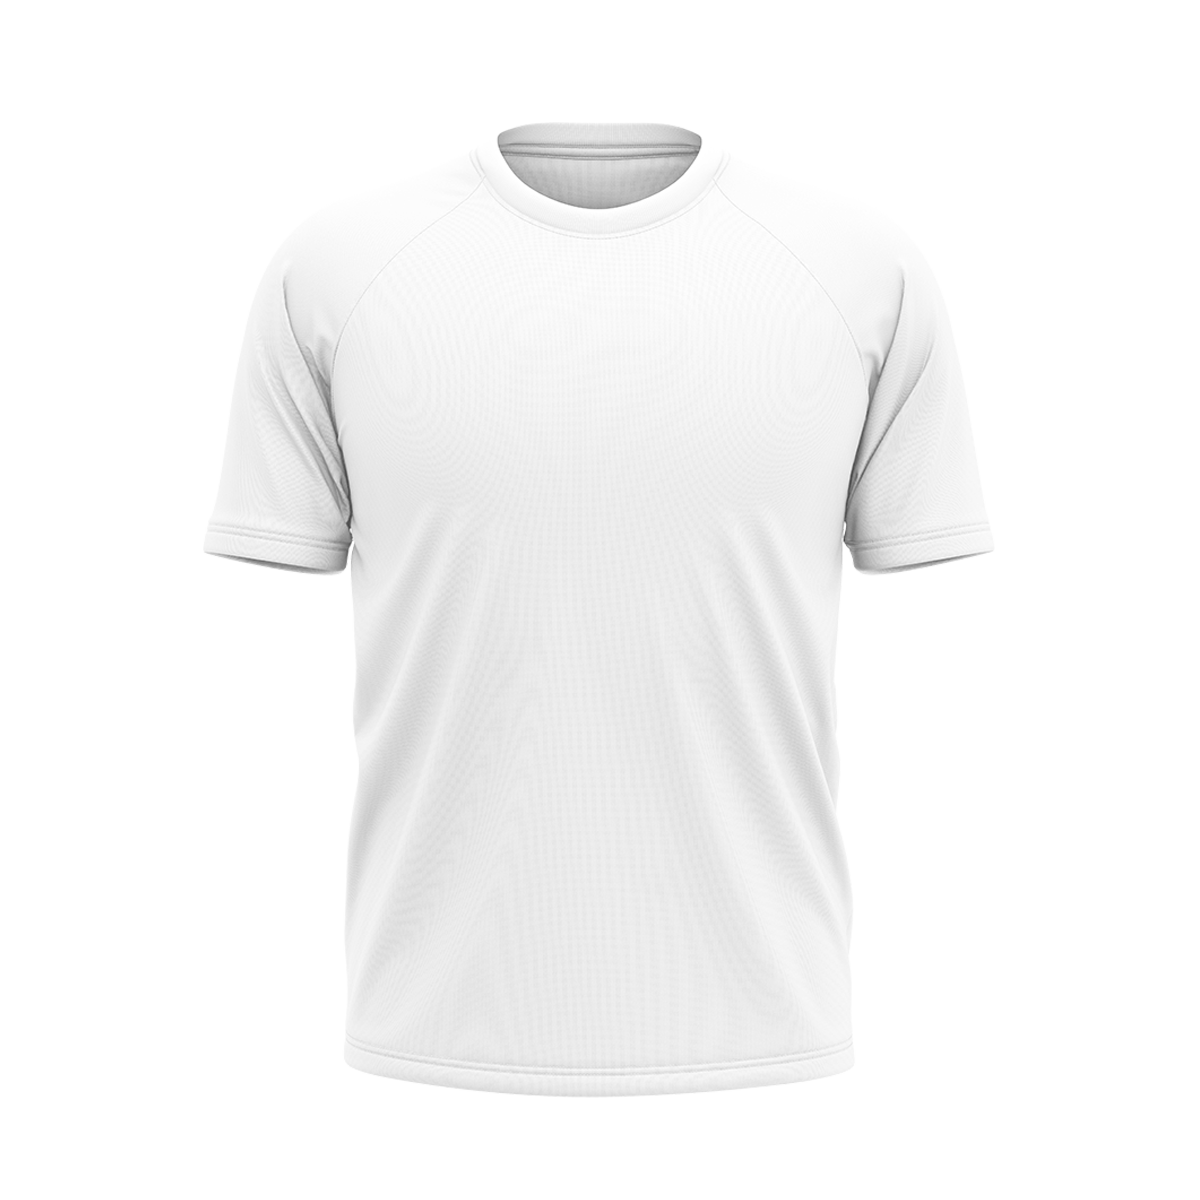 Active Youth Rugby Jersey